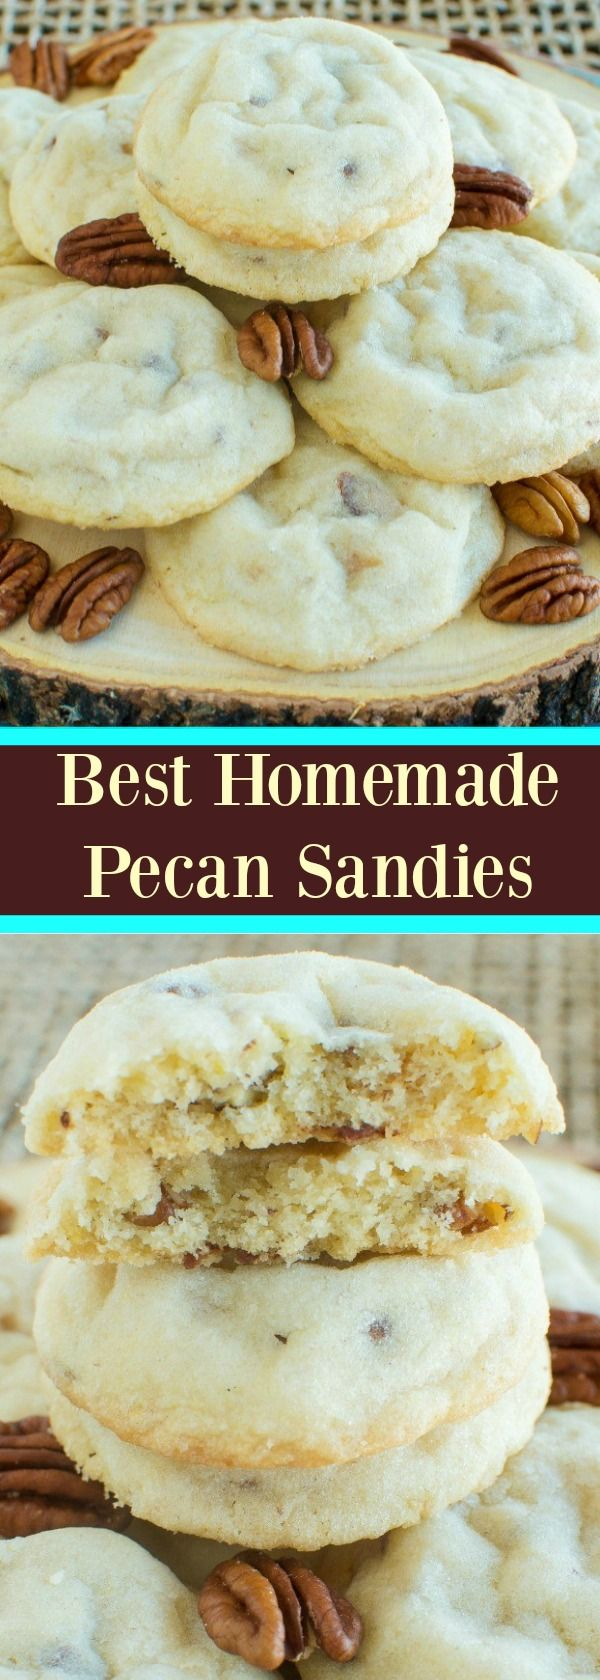 Best Homemade Pecan Sandies